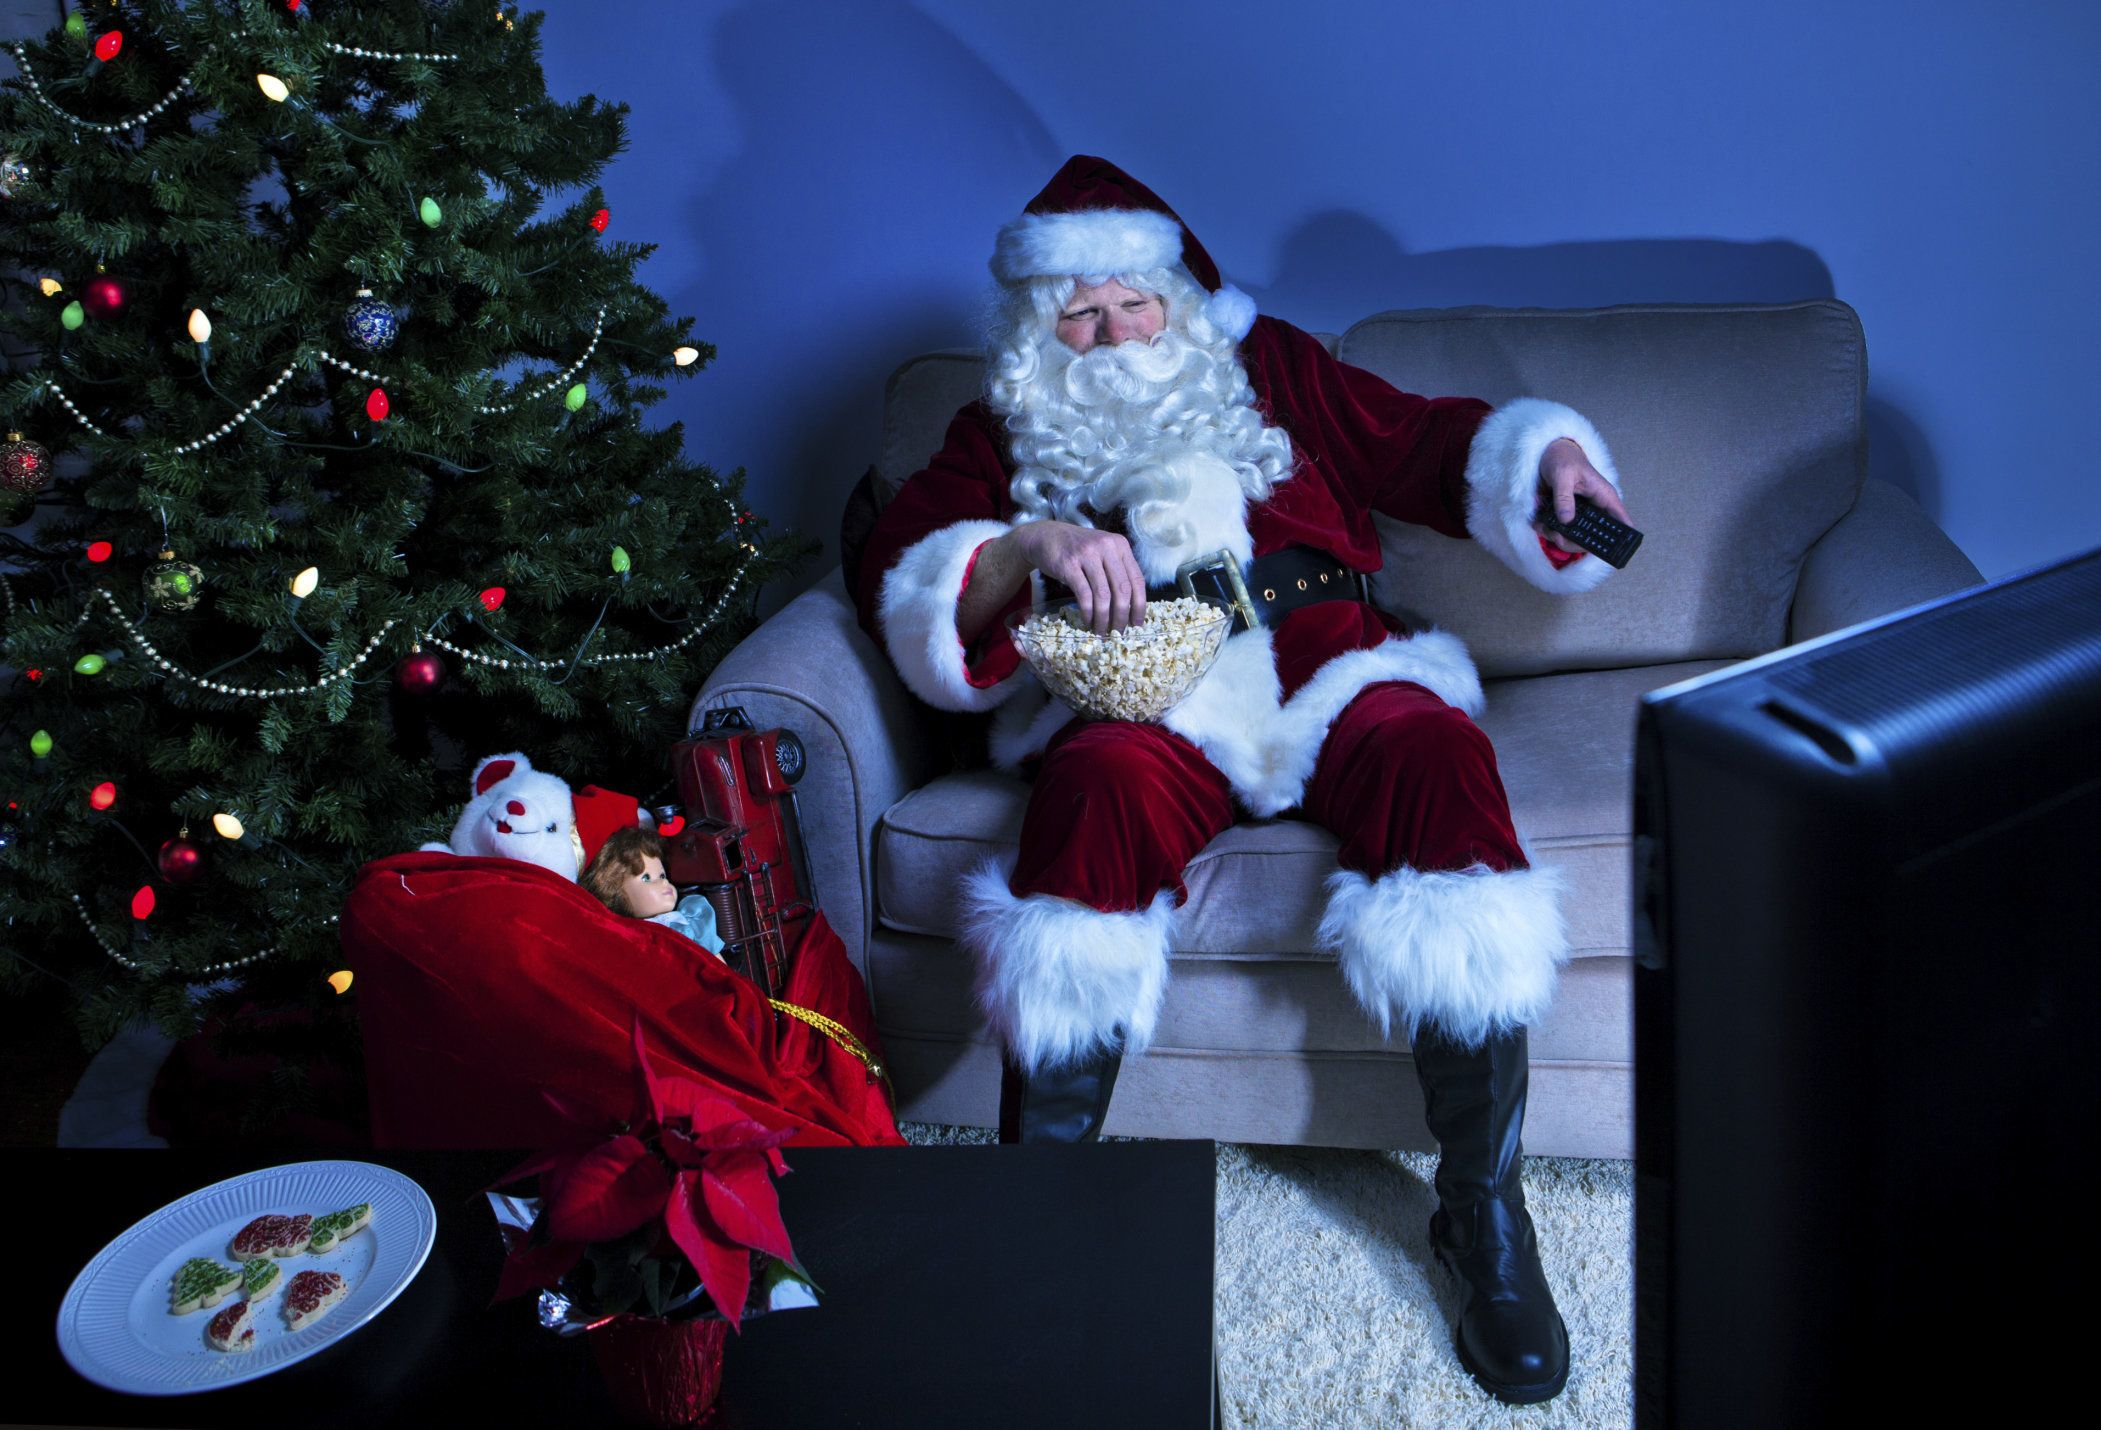 Santa Claus takes a break from delivering toys and watches some television.